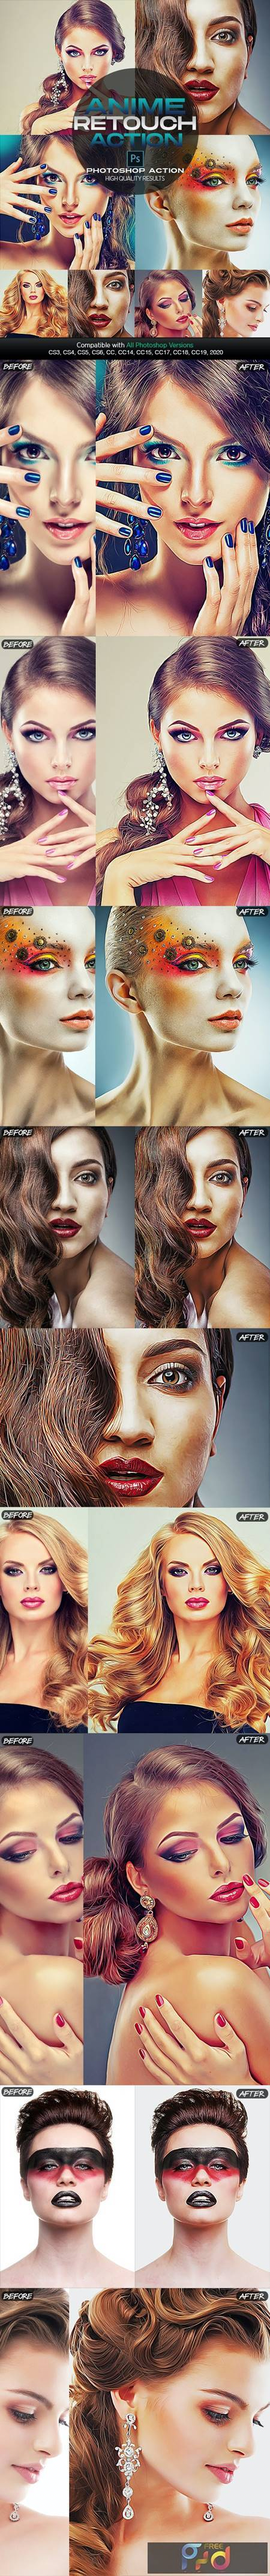 Anime Photo Retouch Photoshop Action 26656091 1